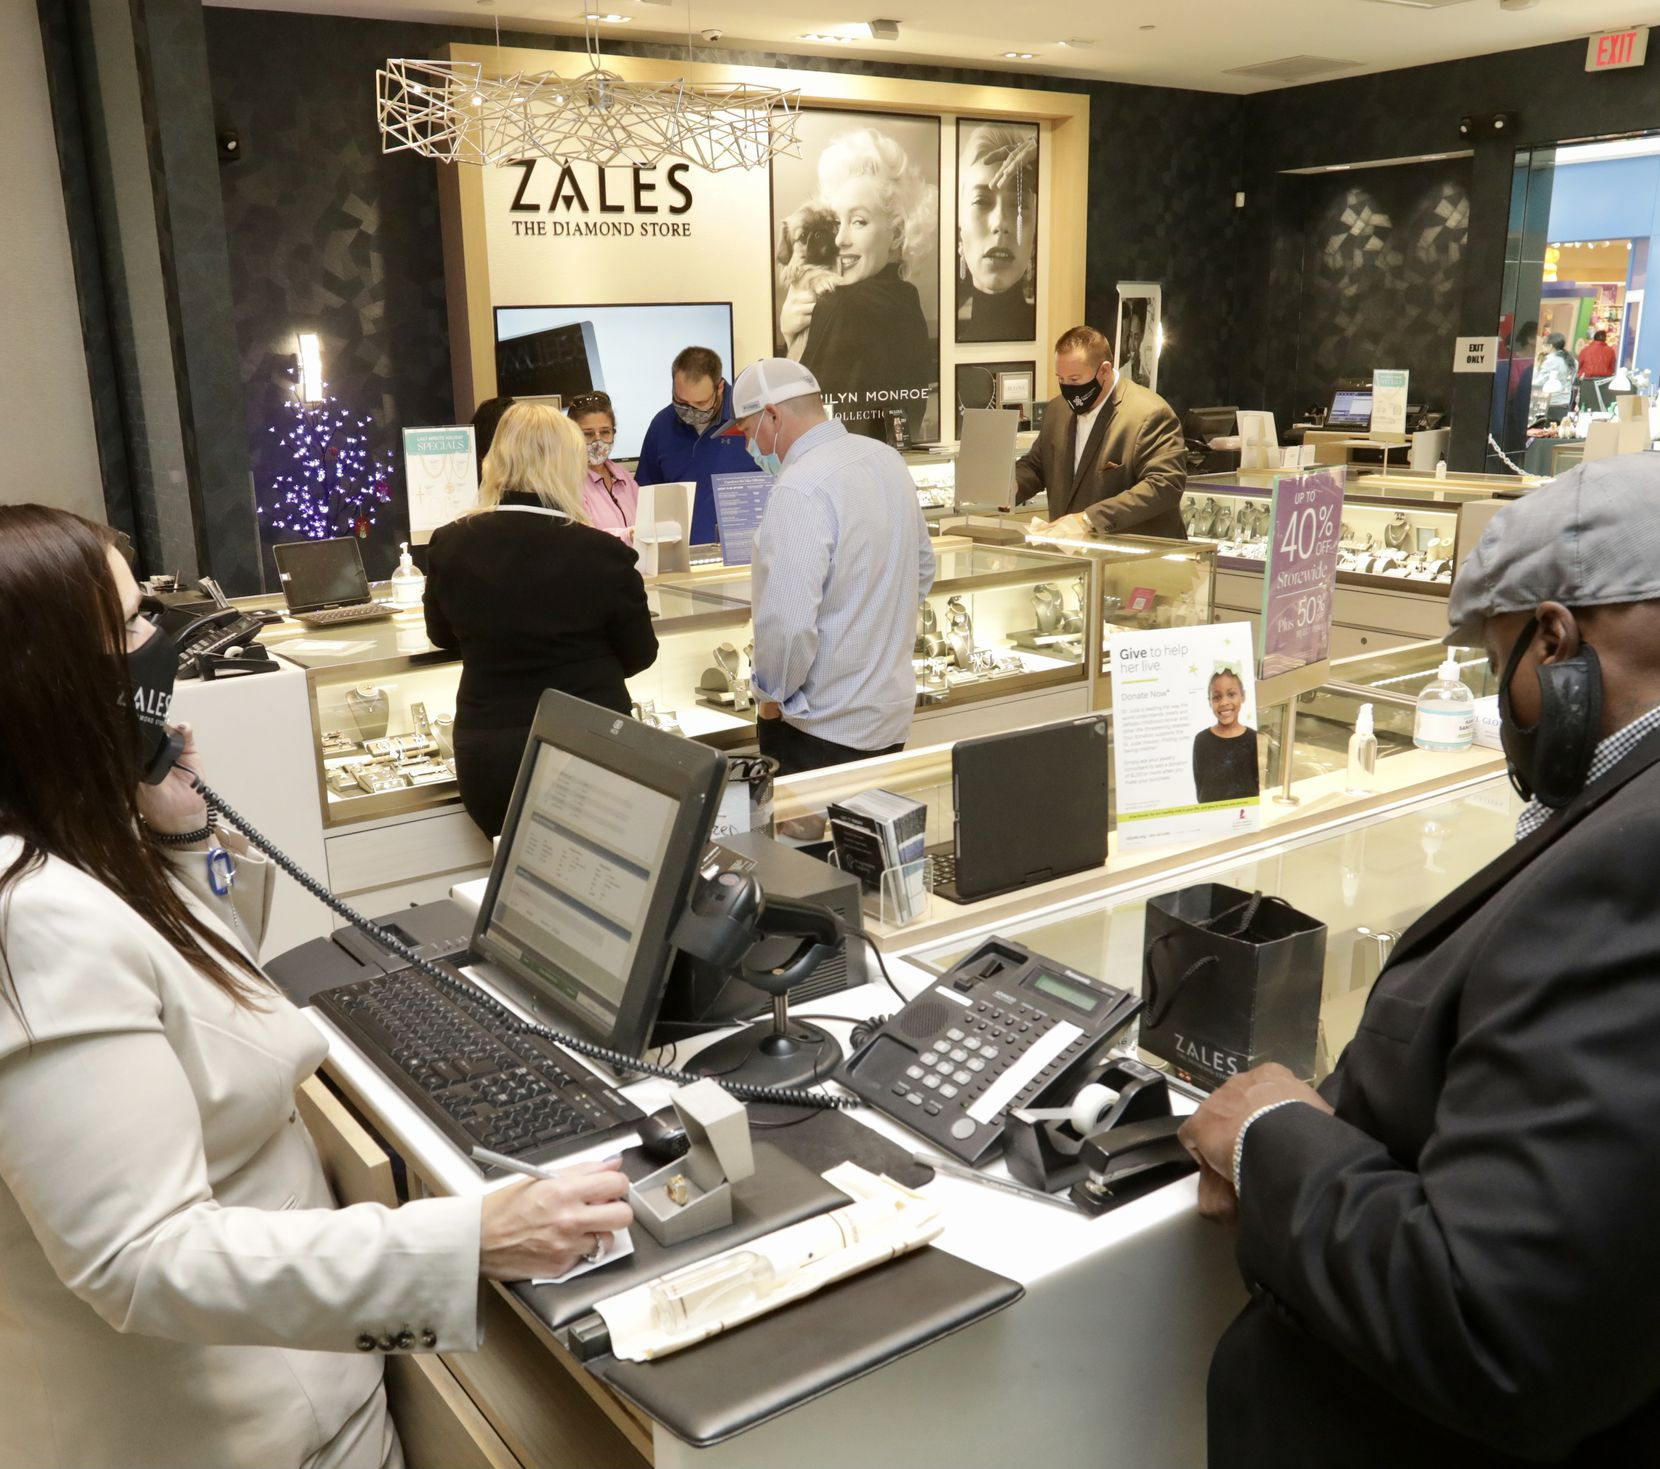 Customers browse the selection at the Stonebriar Centre Zales store in Frisco on Dec. 23.